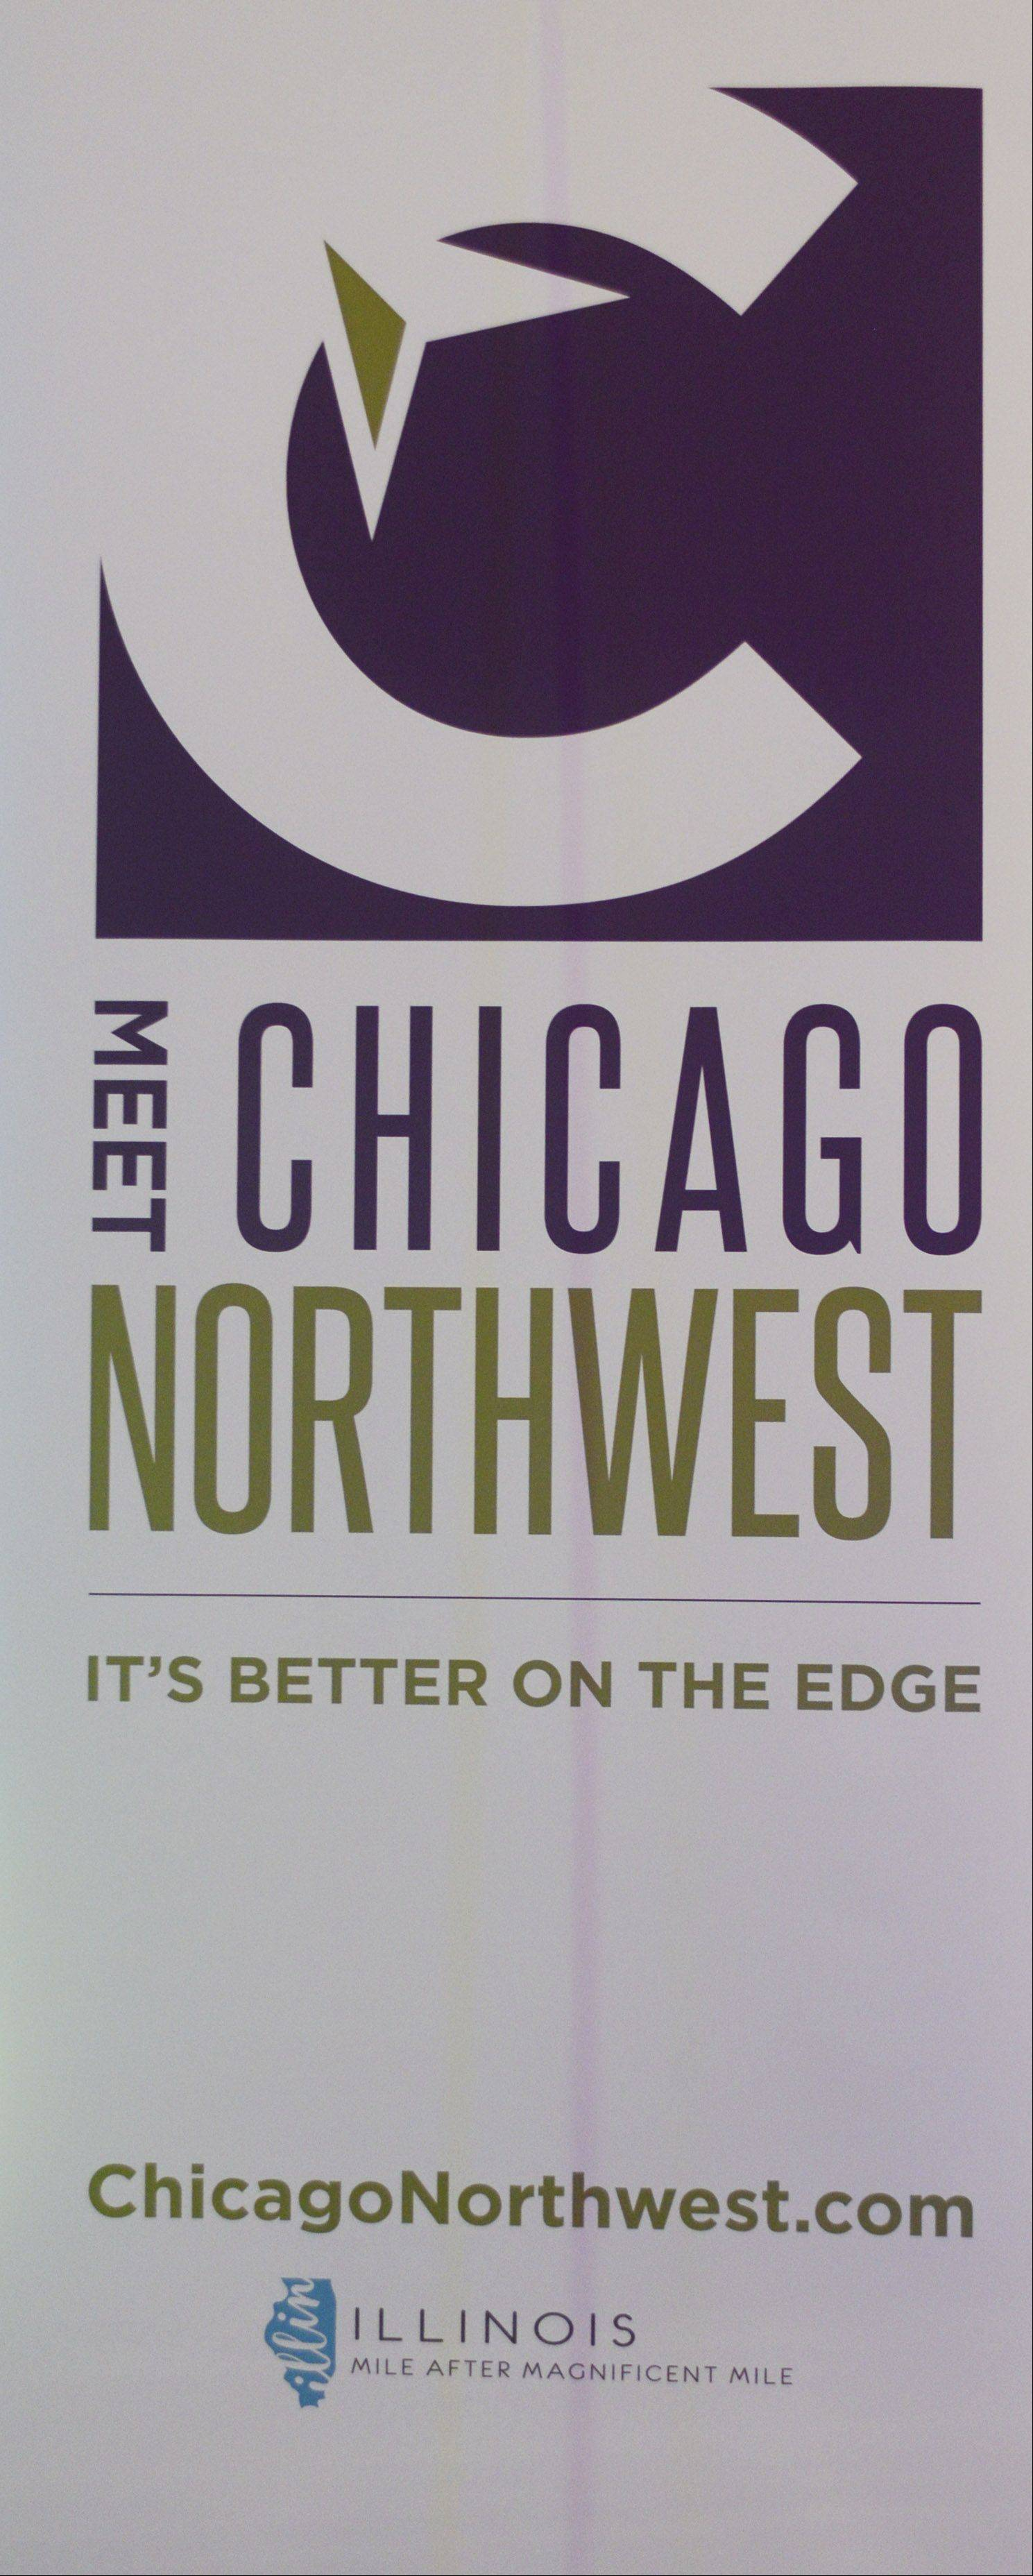 Meet Chicago Northwest is the new brand name for the former Woodfield Chicago Northwest Convention Bureau.